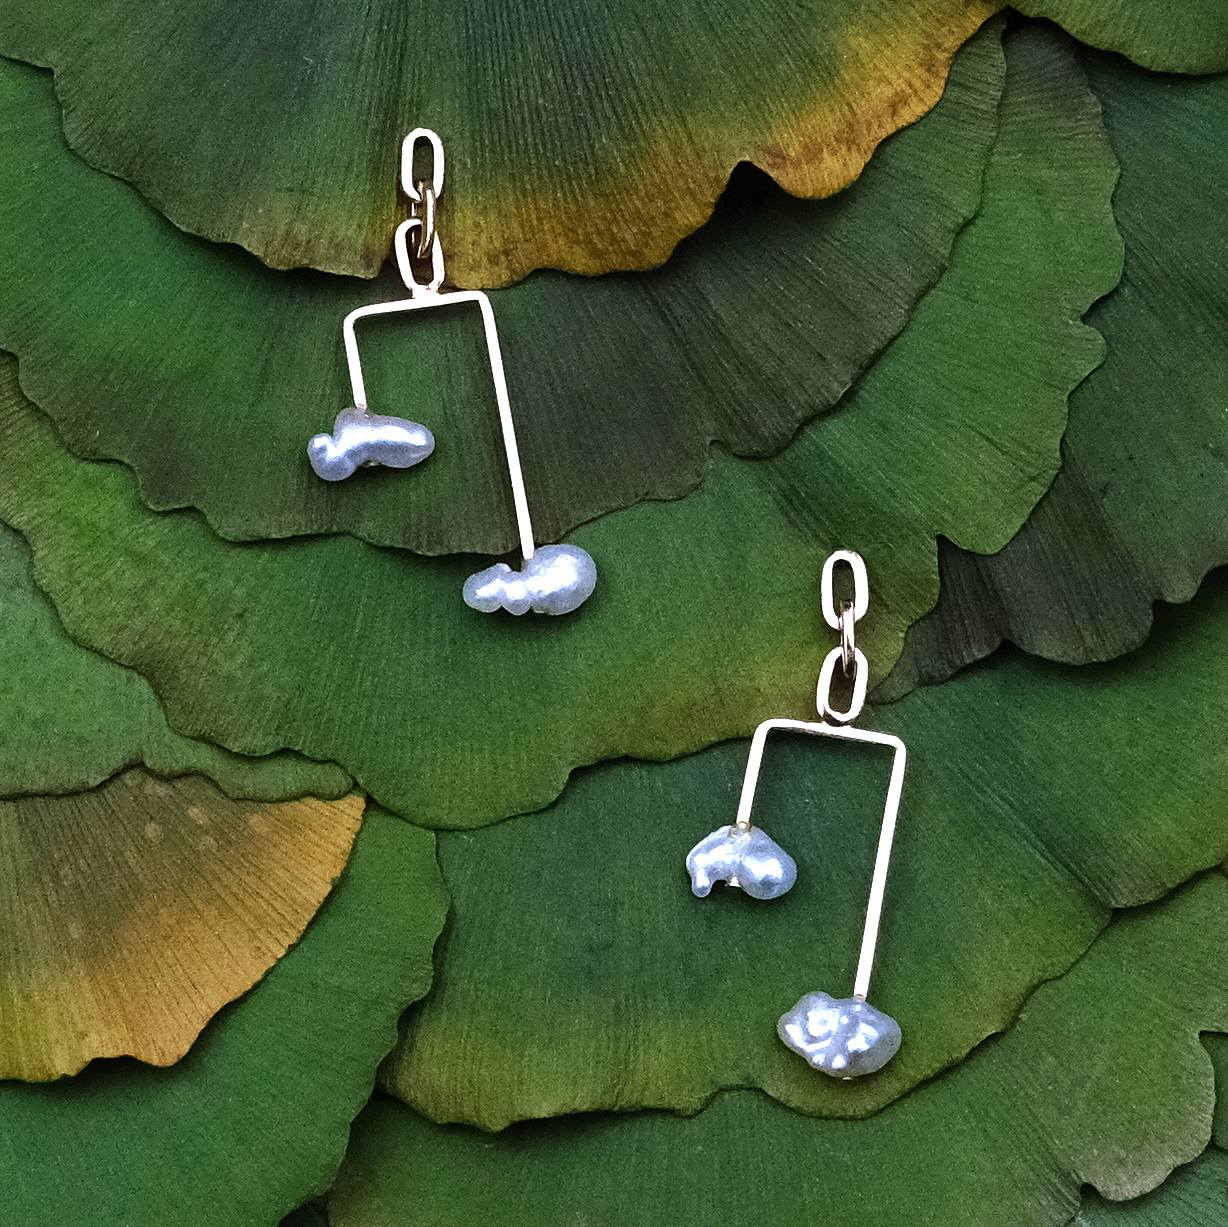 Tilda Biehn Stratus Earrings